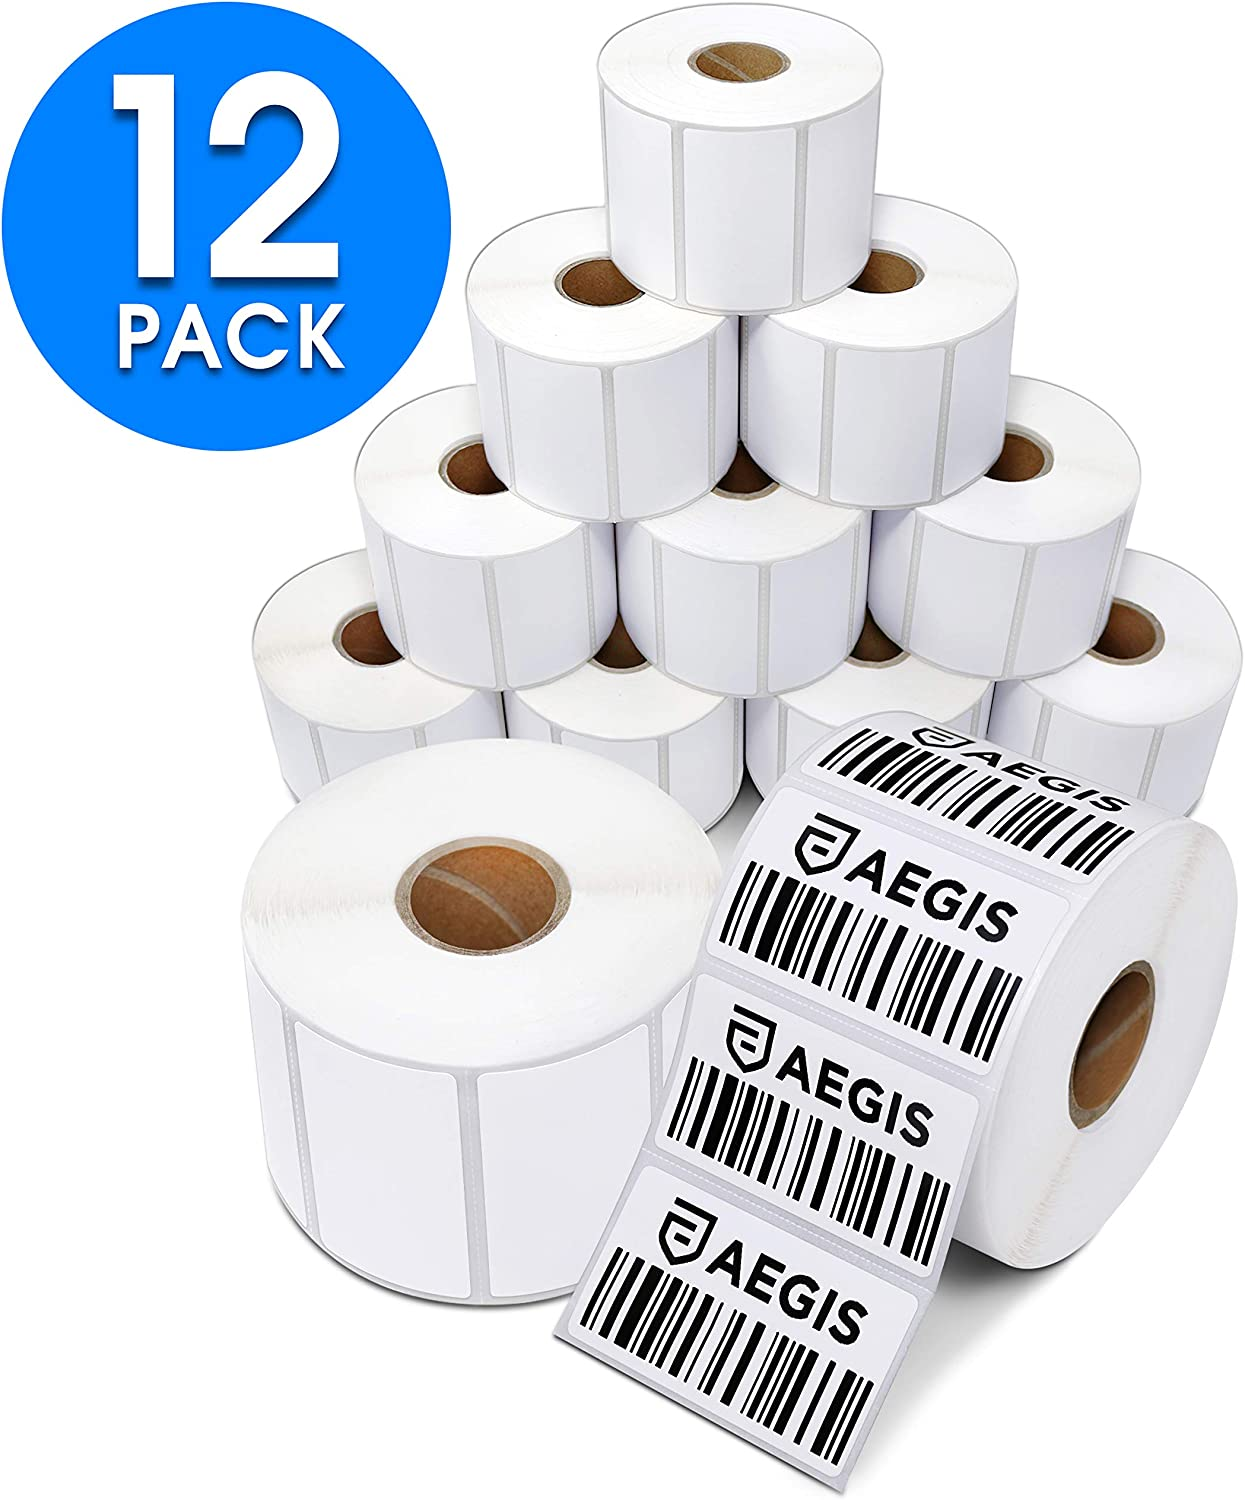 """Aegis Adhesives - 2 ¼"""" X 1 ¼"""" Direct Thermal Labels for UPC Barcodes, Address, Perforated & Compatible with Rollo Label Printer & Zebra Desktop Printers (12 Rolls, 1000/Roll)"""